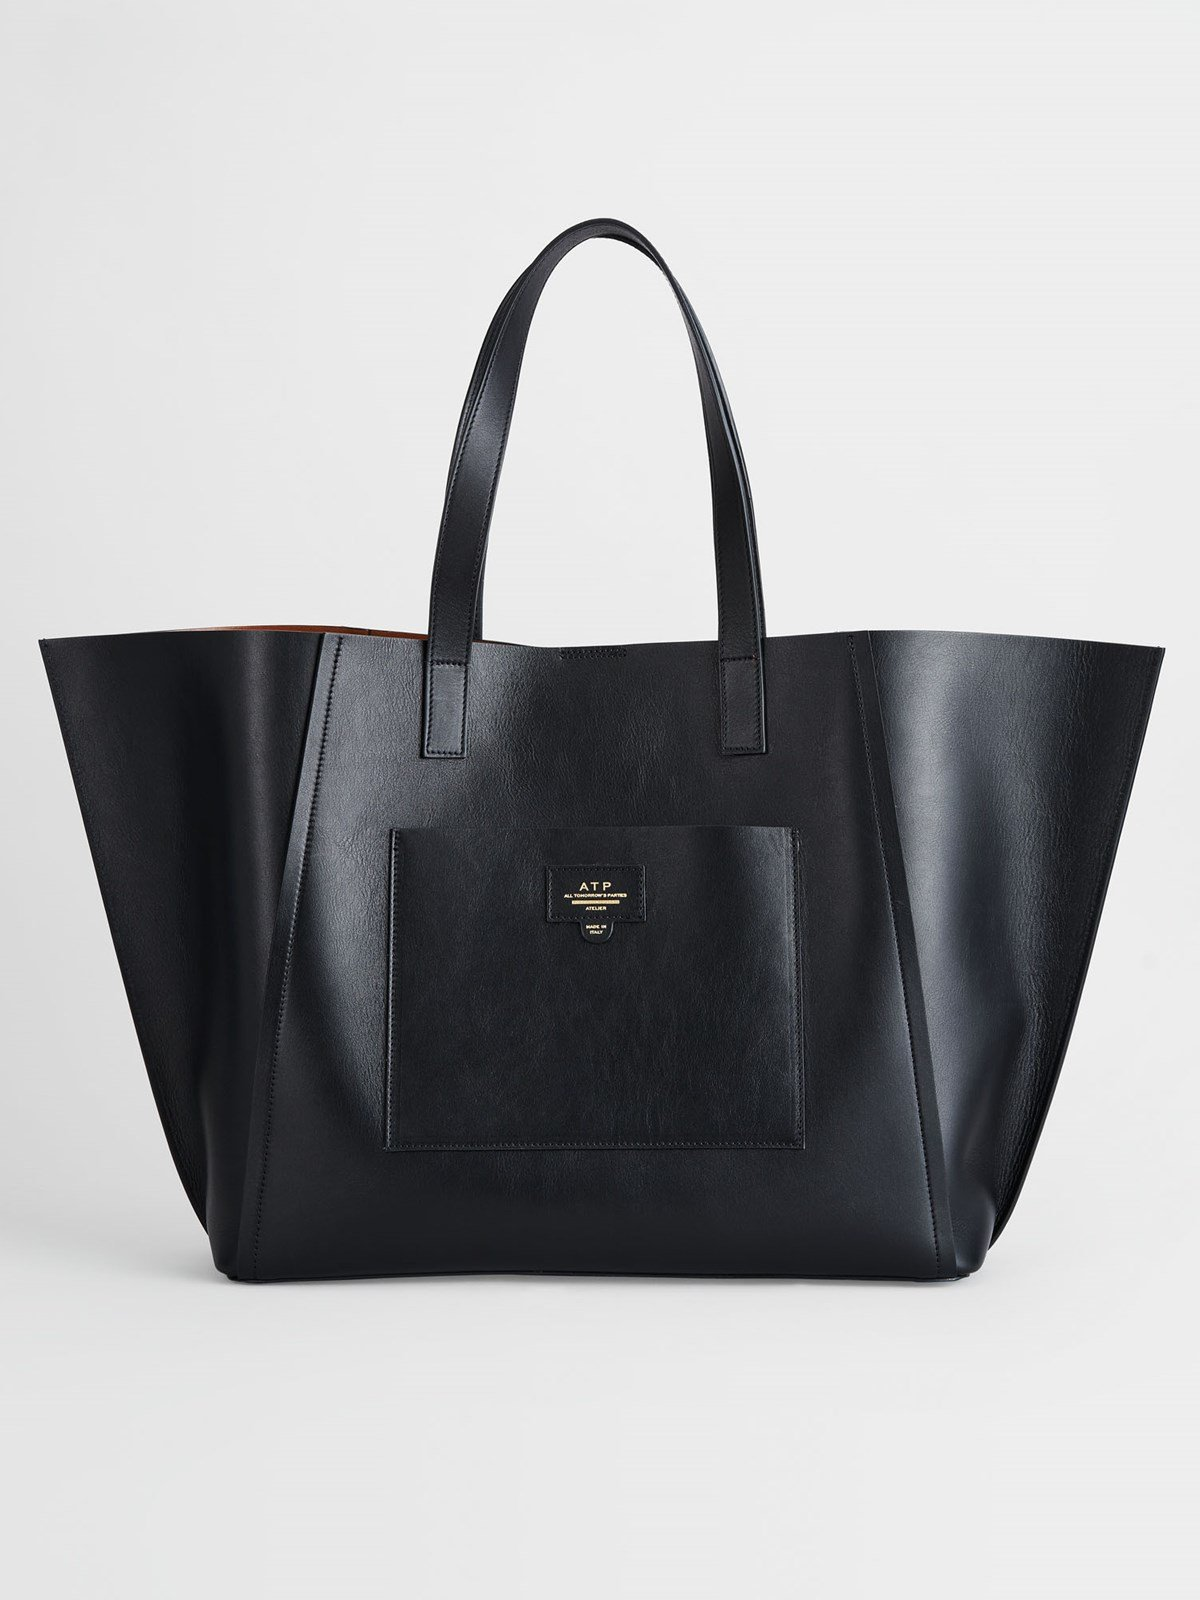 Conversano Black Large tote